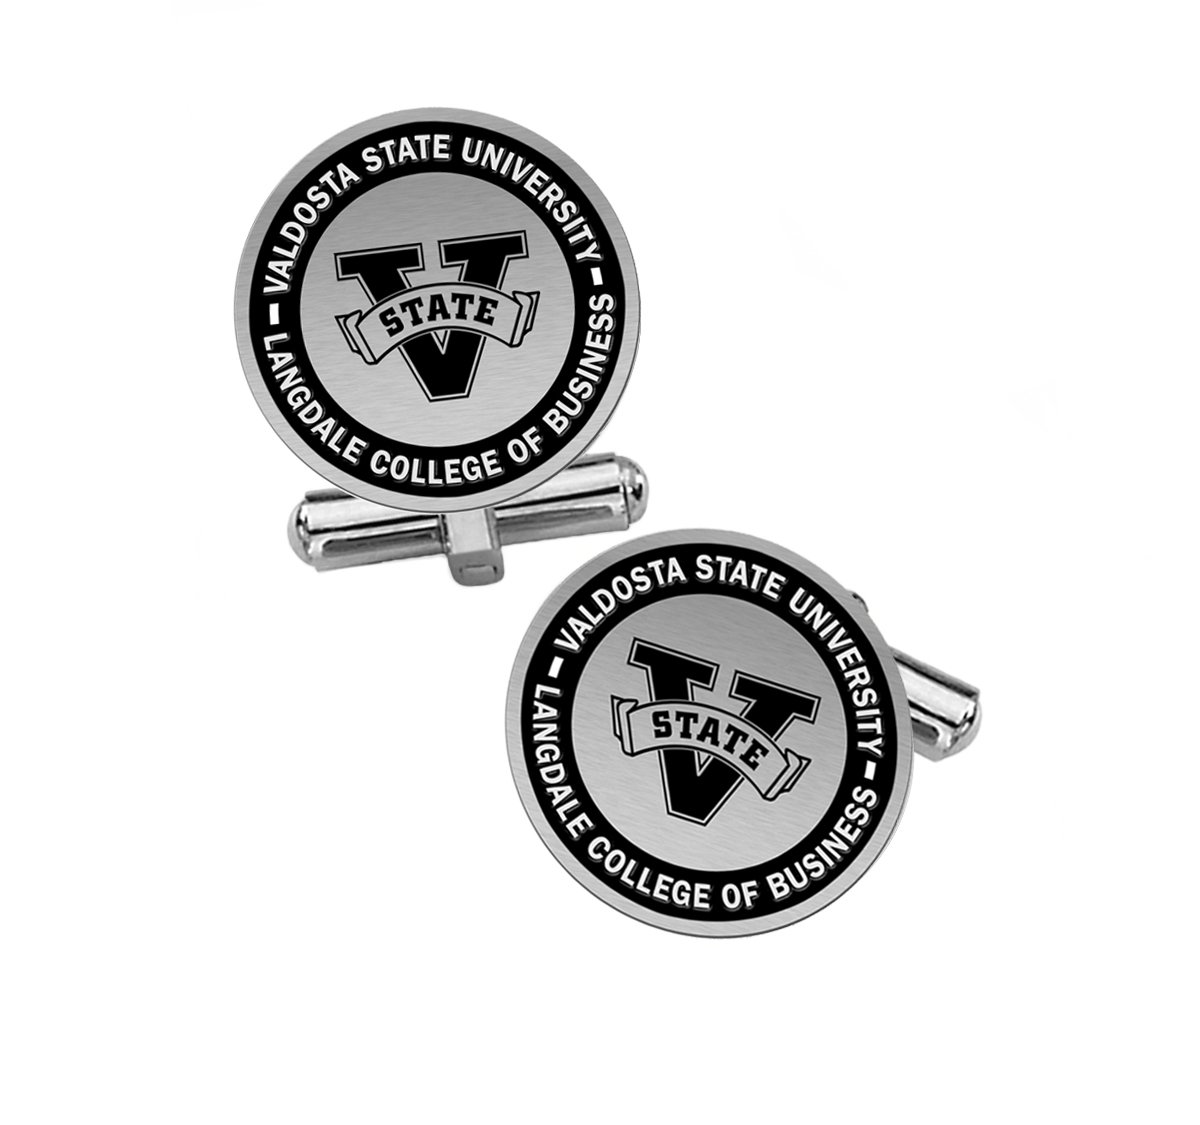 Langdale College of Business Cuff Links   Valdosta State University